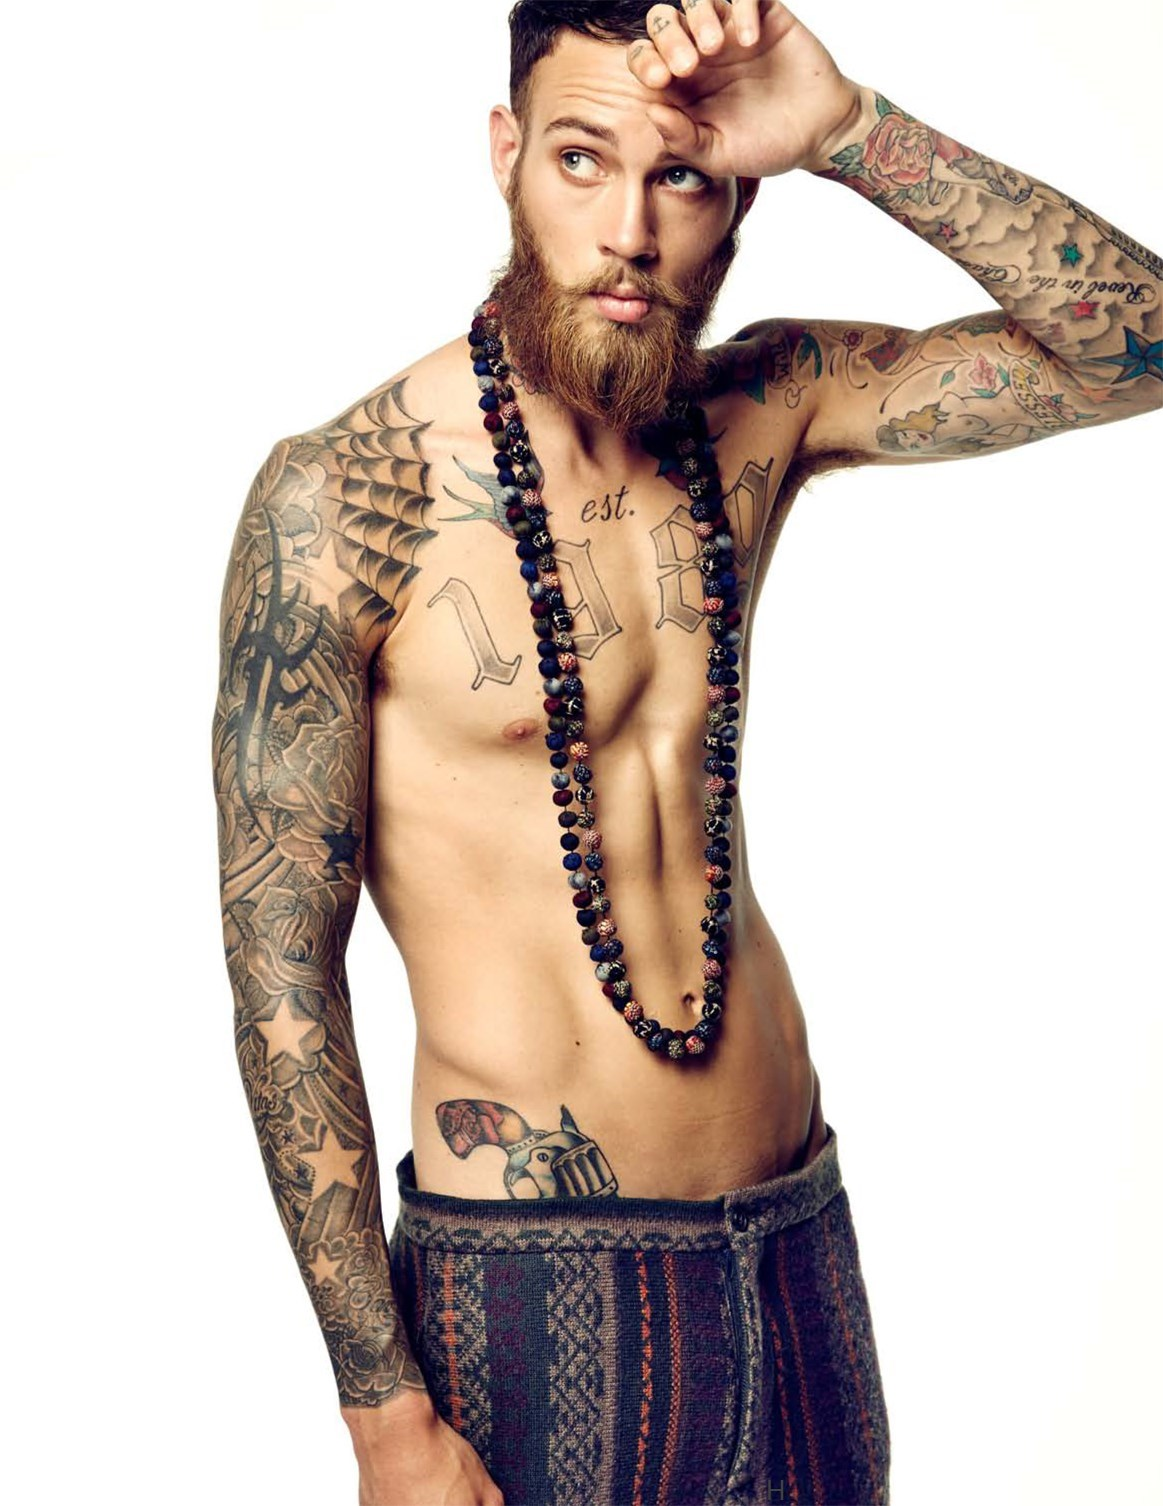 Billy Huxley by Daniel Kennedy